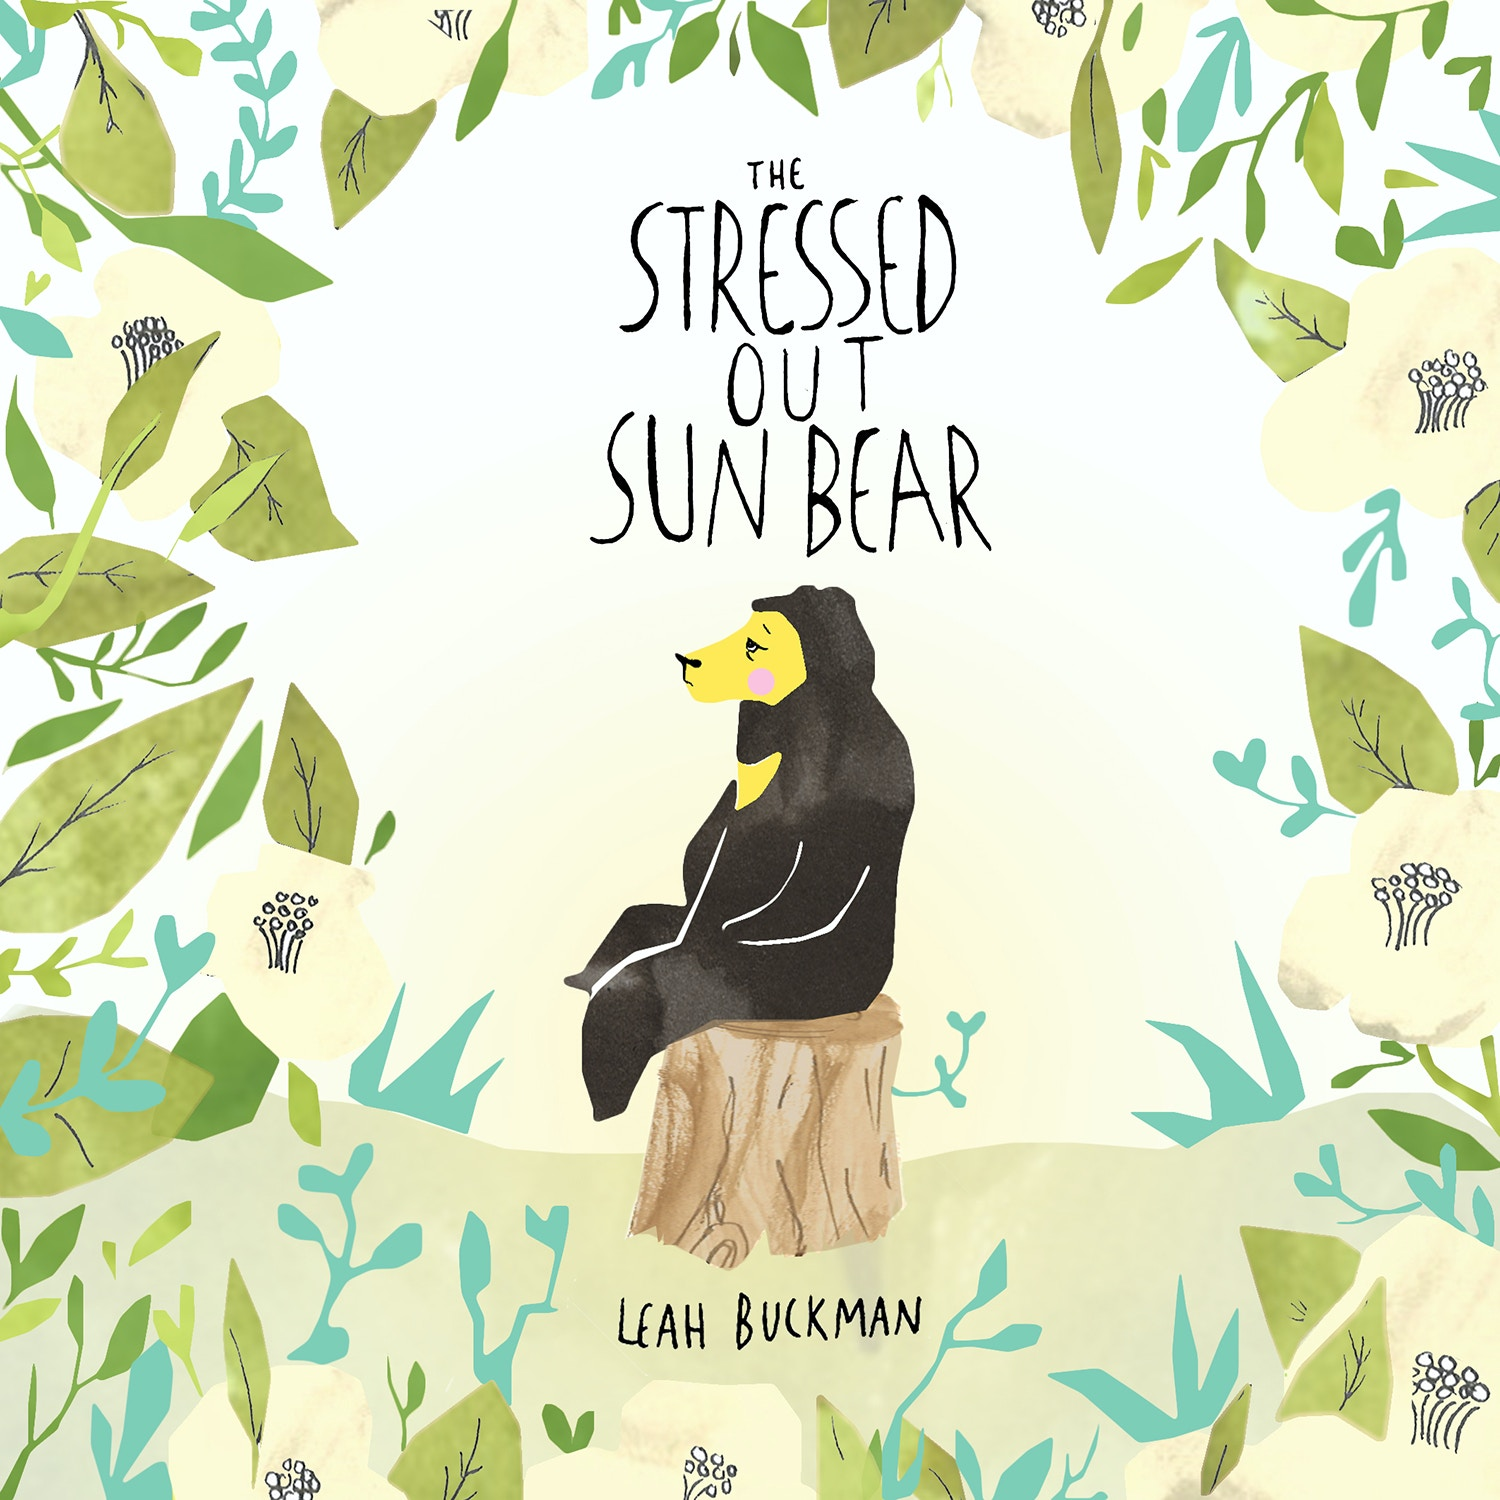 The Stressed Out Sun Bear